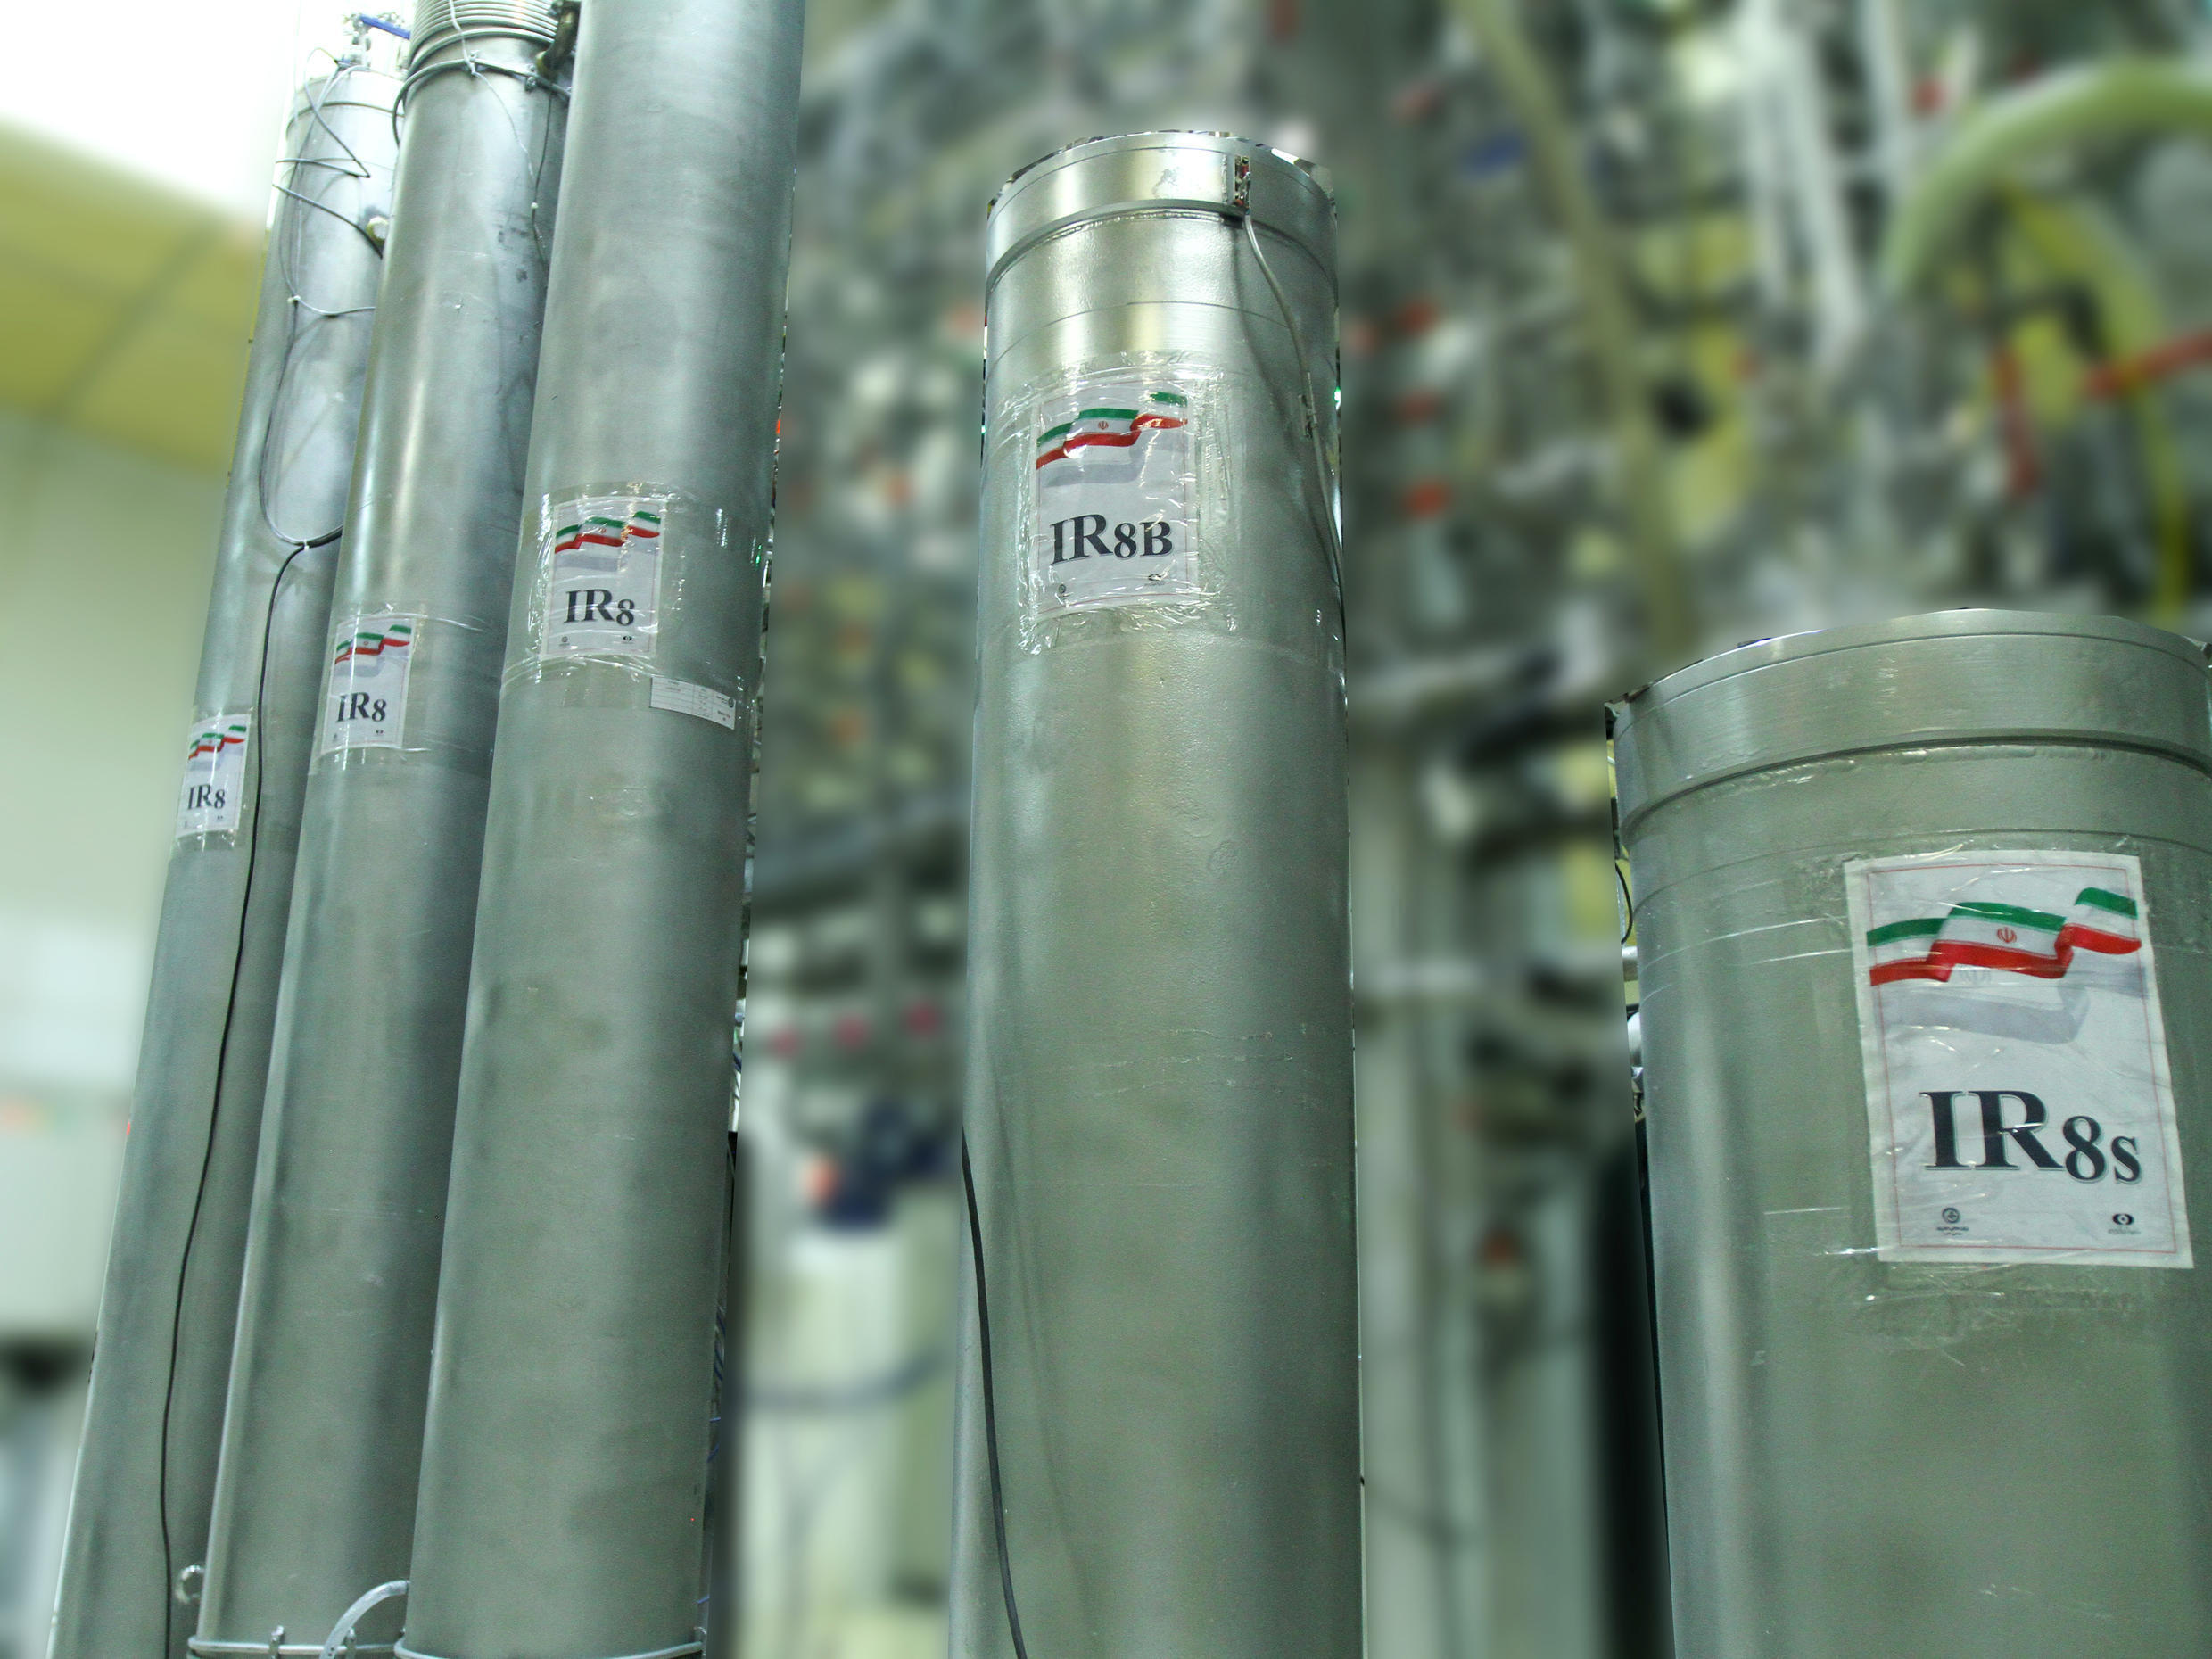 The type of centrifuges used at Iran's uranium enrichment plant in Natanz are one of the key restrictions it signed up to under a troubled 2015 nuclear deal with major powers